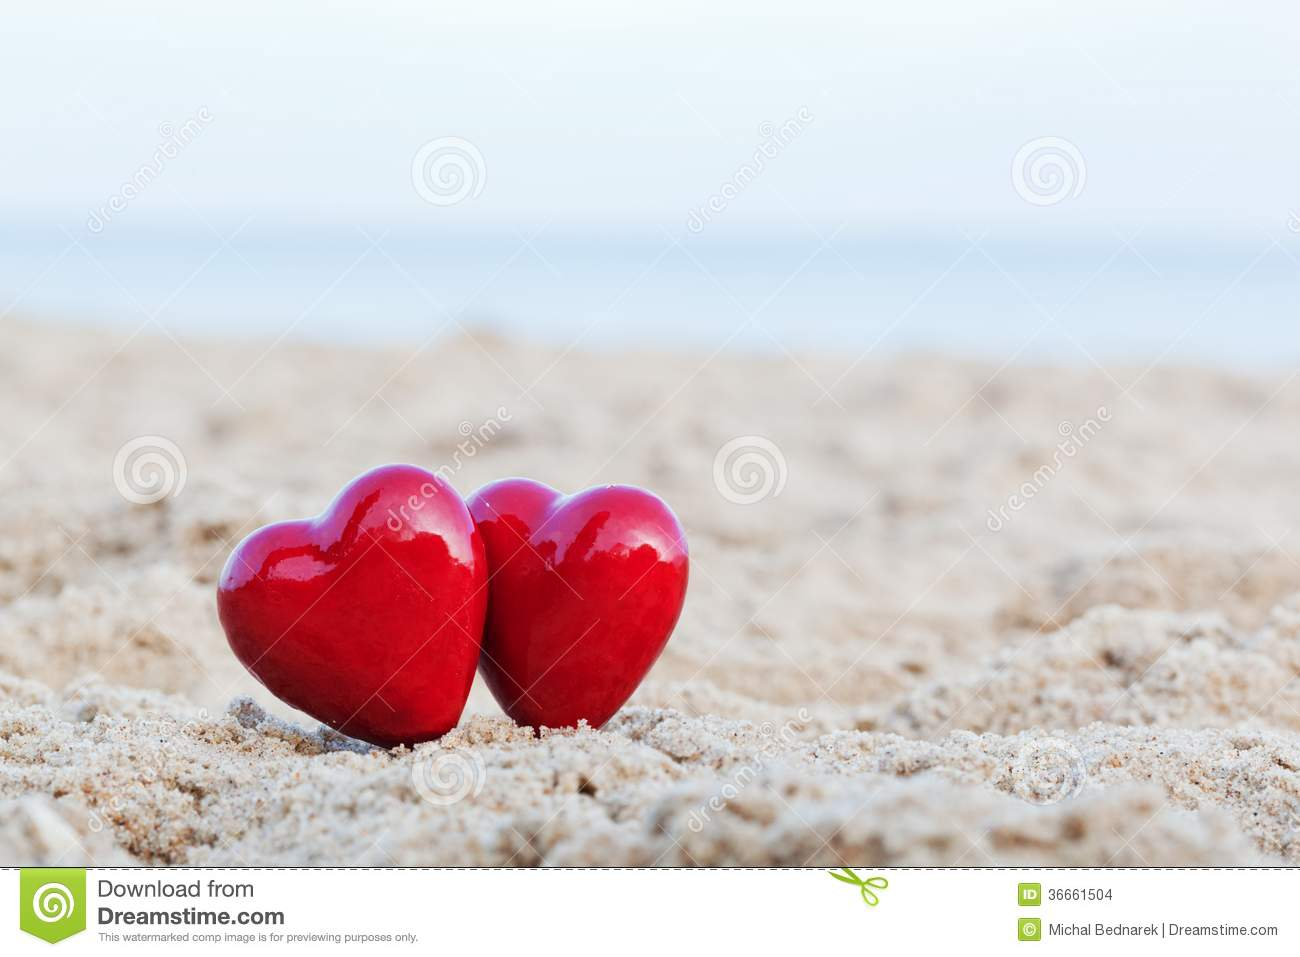 Valentine Wallpaper Iphone X Two Red Hearts On The Beach Love Stock Photo Image Of